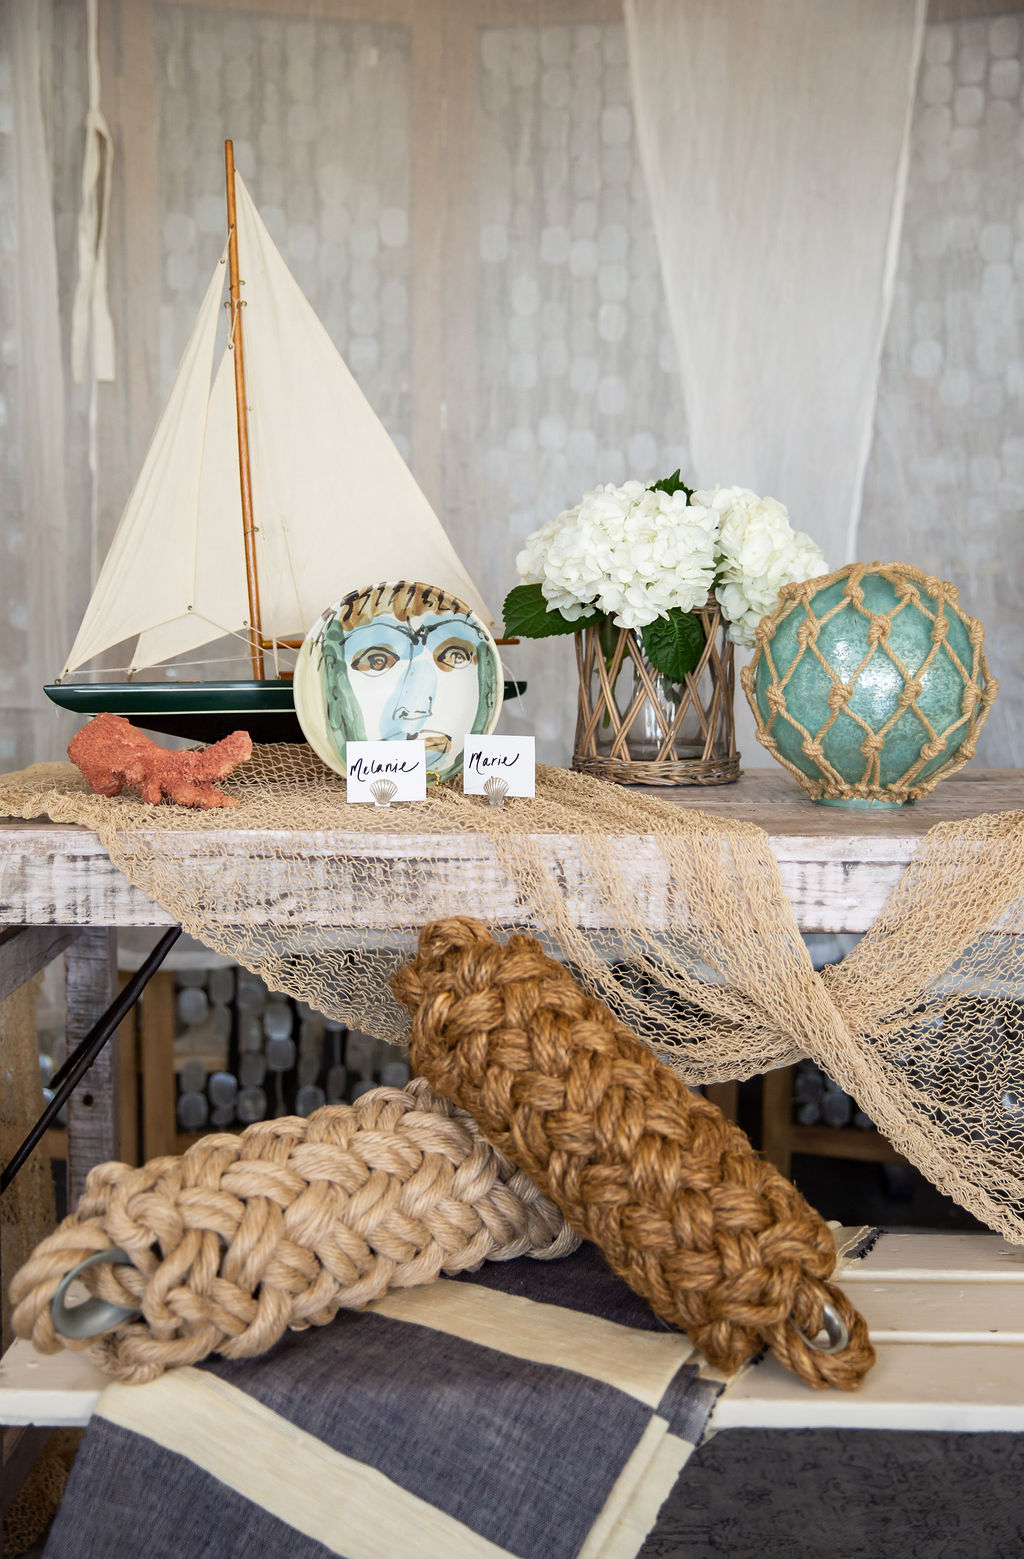 How stunning is that vintage sailboat? The white bench is vintage, too, as is the fishing net.